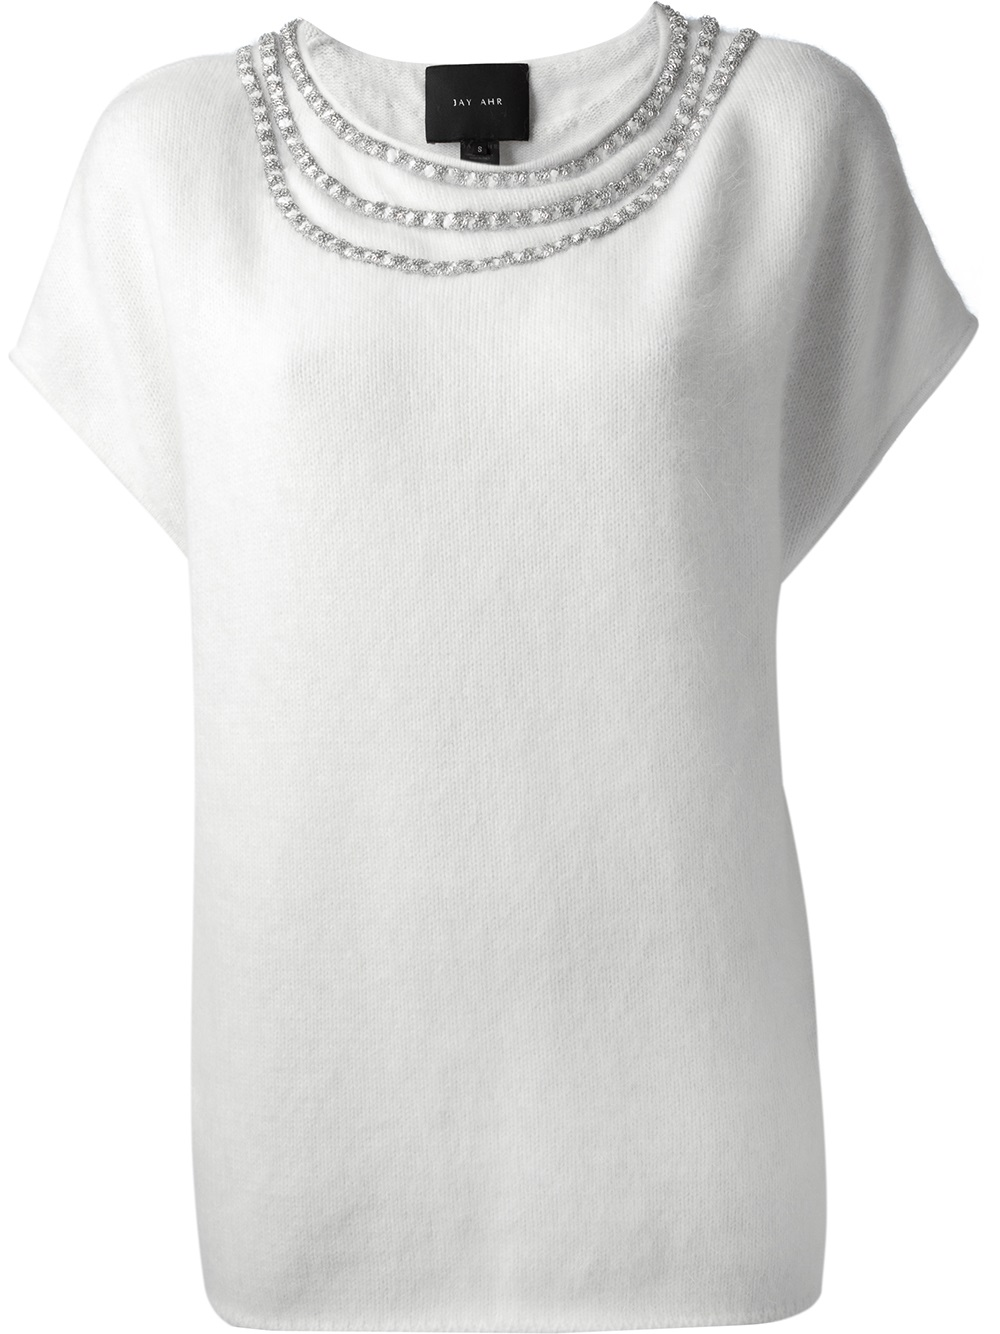 Jay ahr Short Sleeve Sweater in White | Lyst